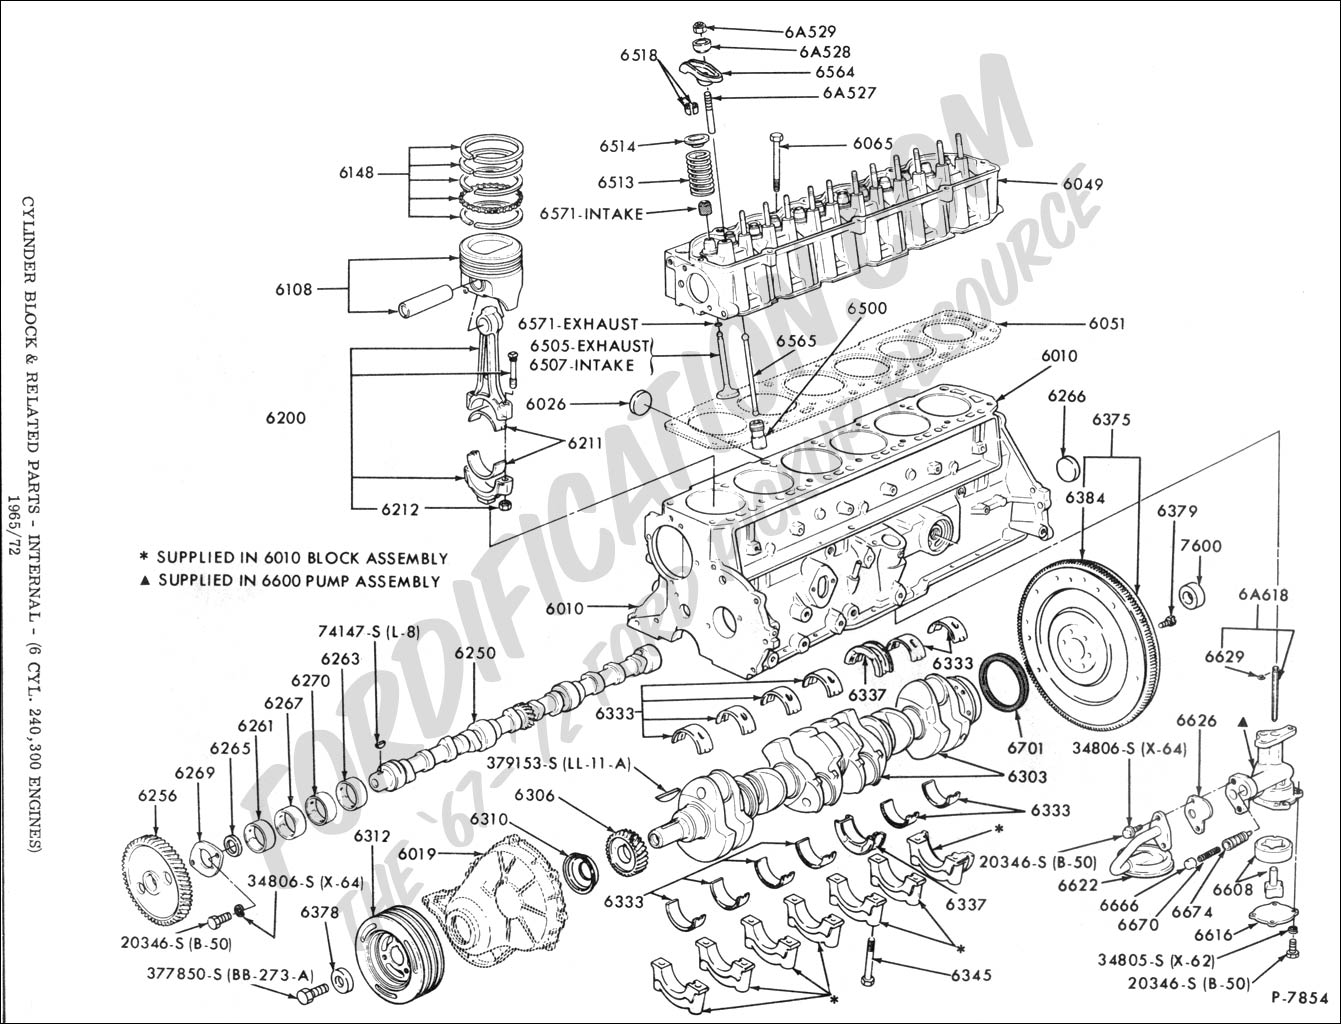 Ford Inline 6 Cylinder Engine Diagram - Trusted Wiring Diagrams •